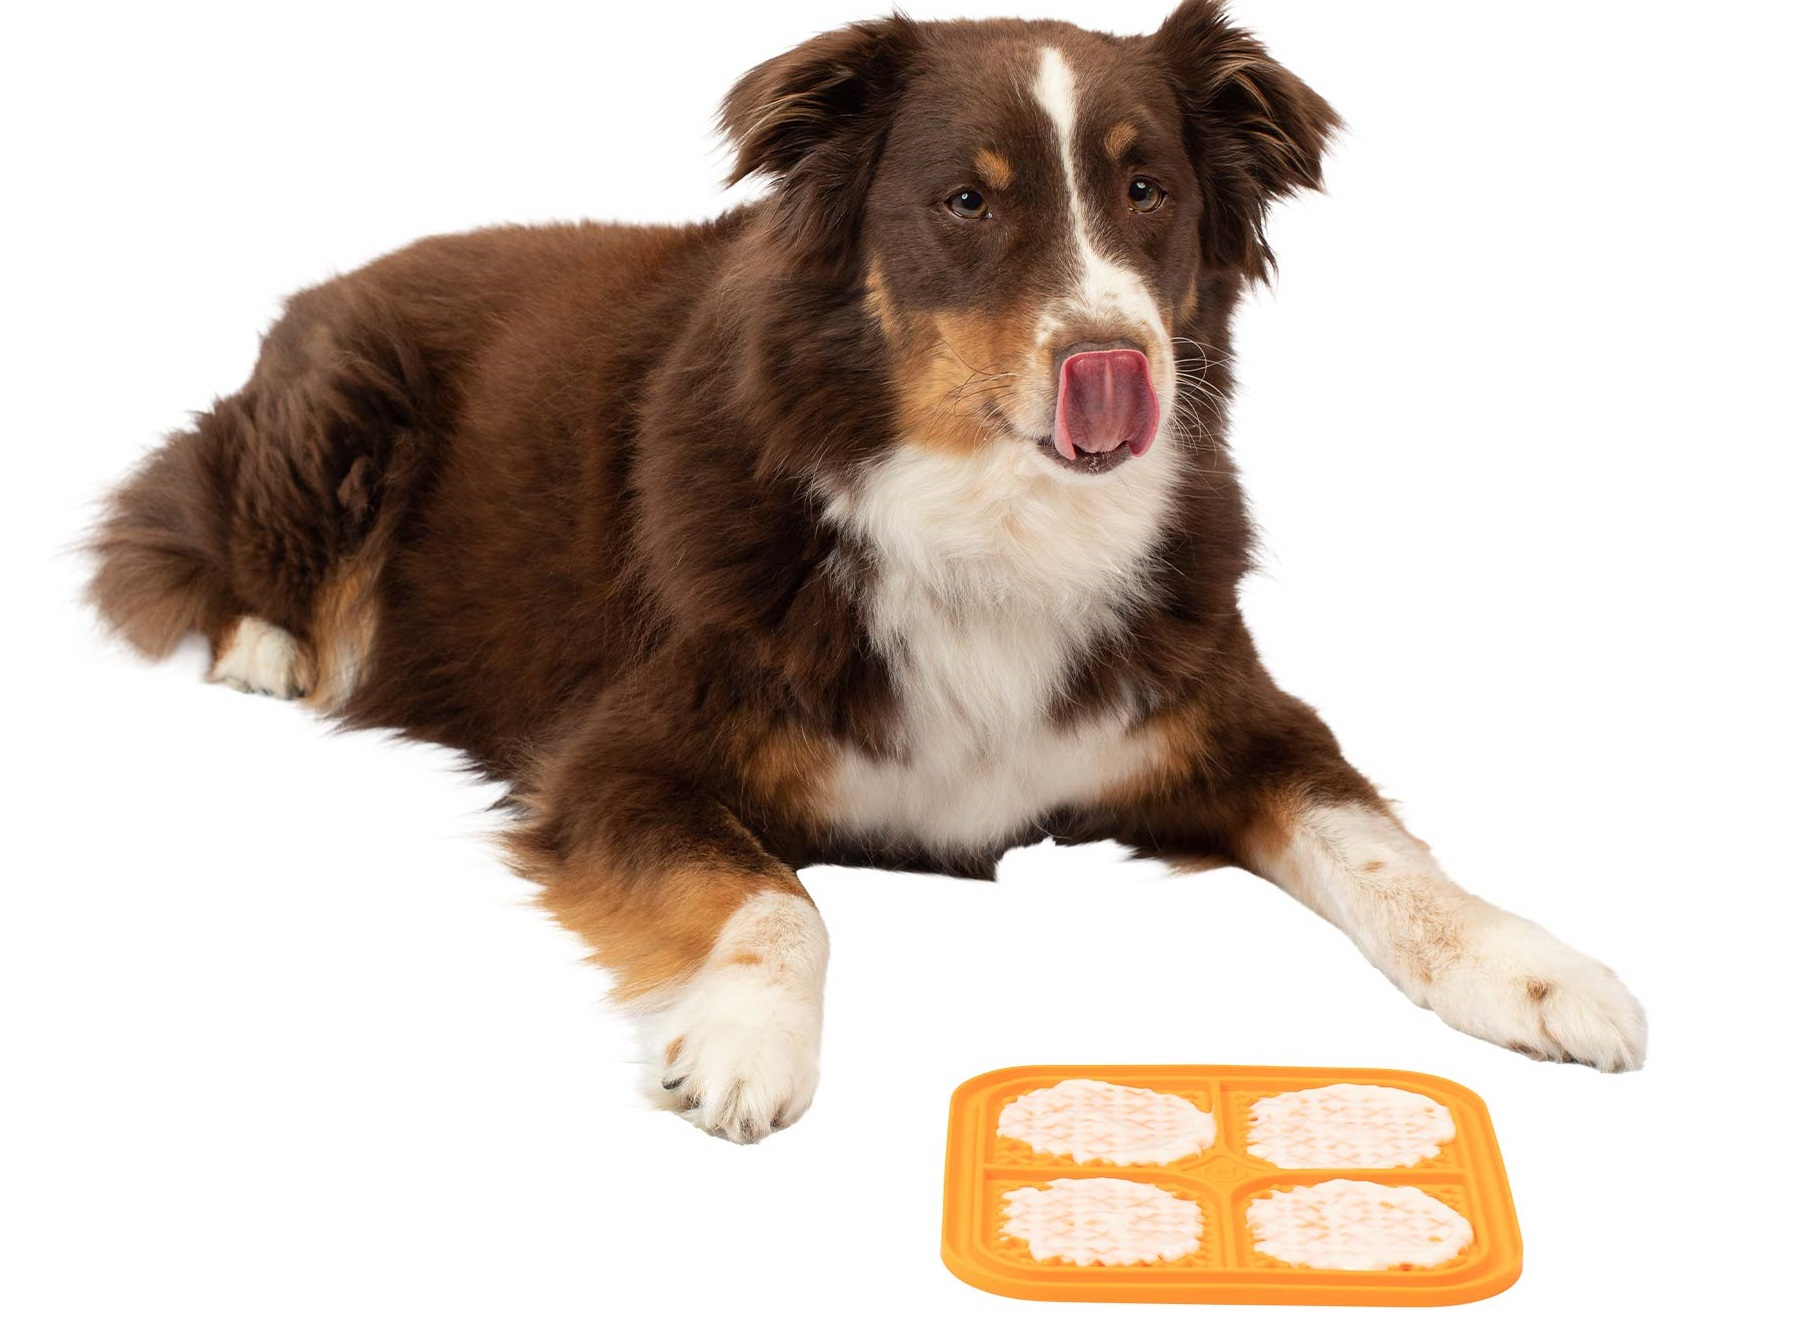 Lickable-mat. 10 Unique Luxury Gifts for Dogs That Amaze Everyone